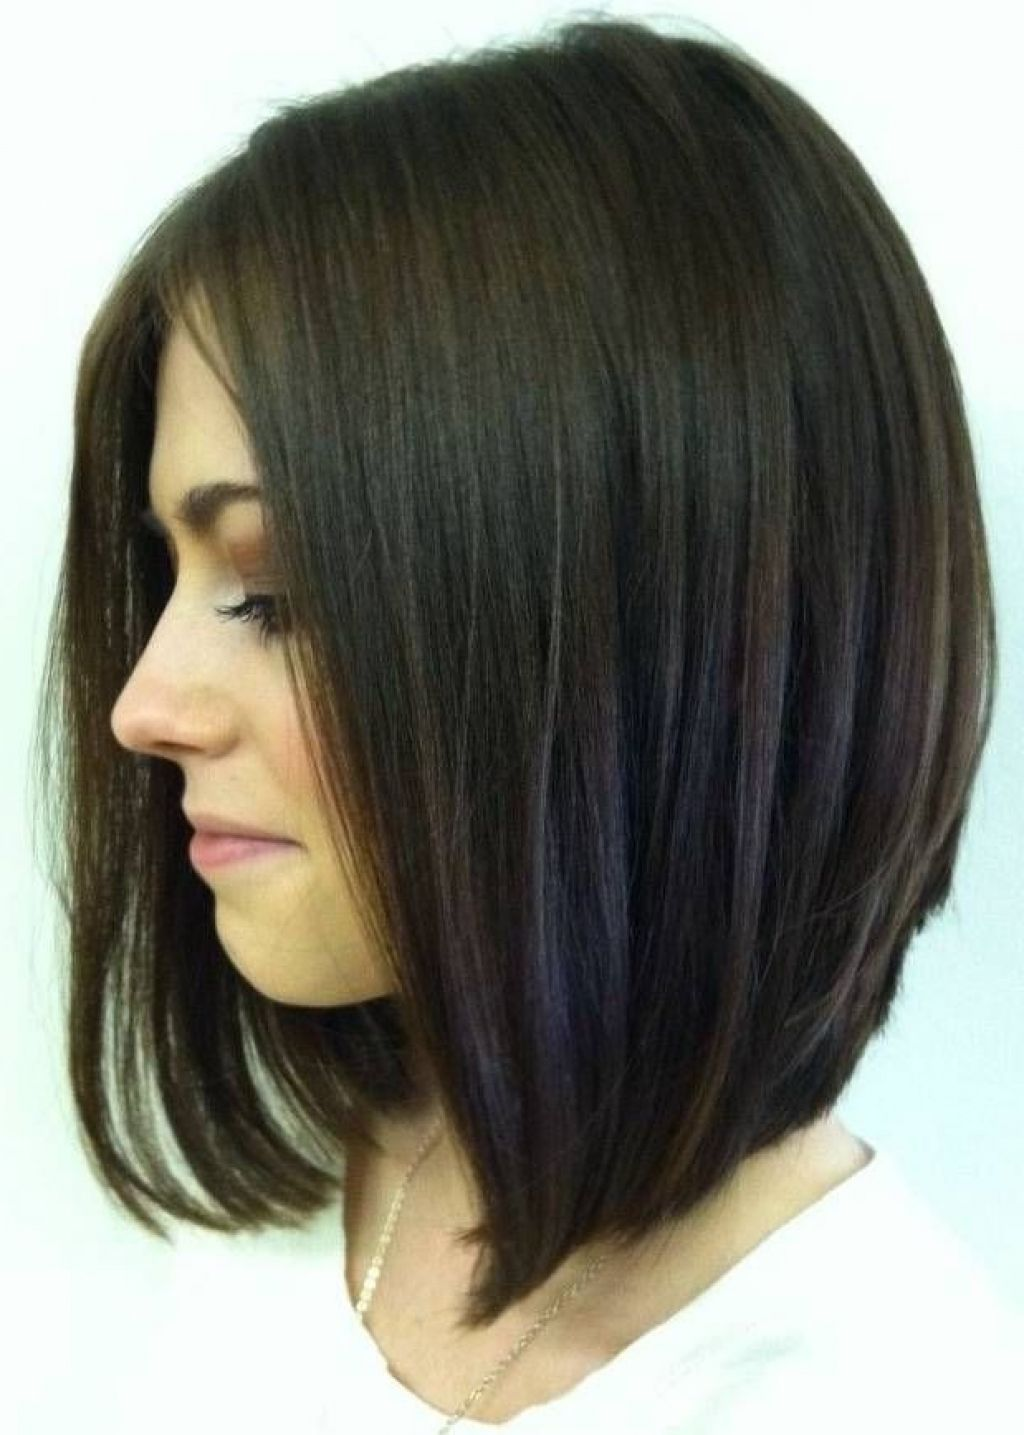 Little Girl With Long Haired Simplicity Cute Cute Girls Haircuts ...